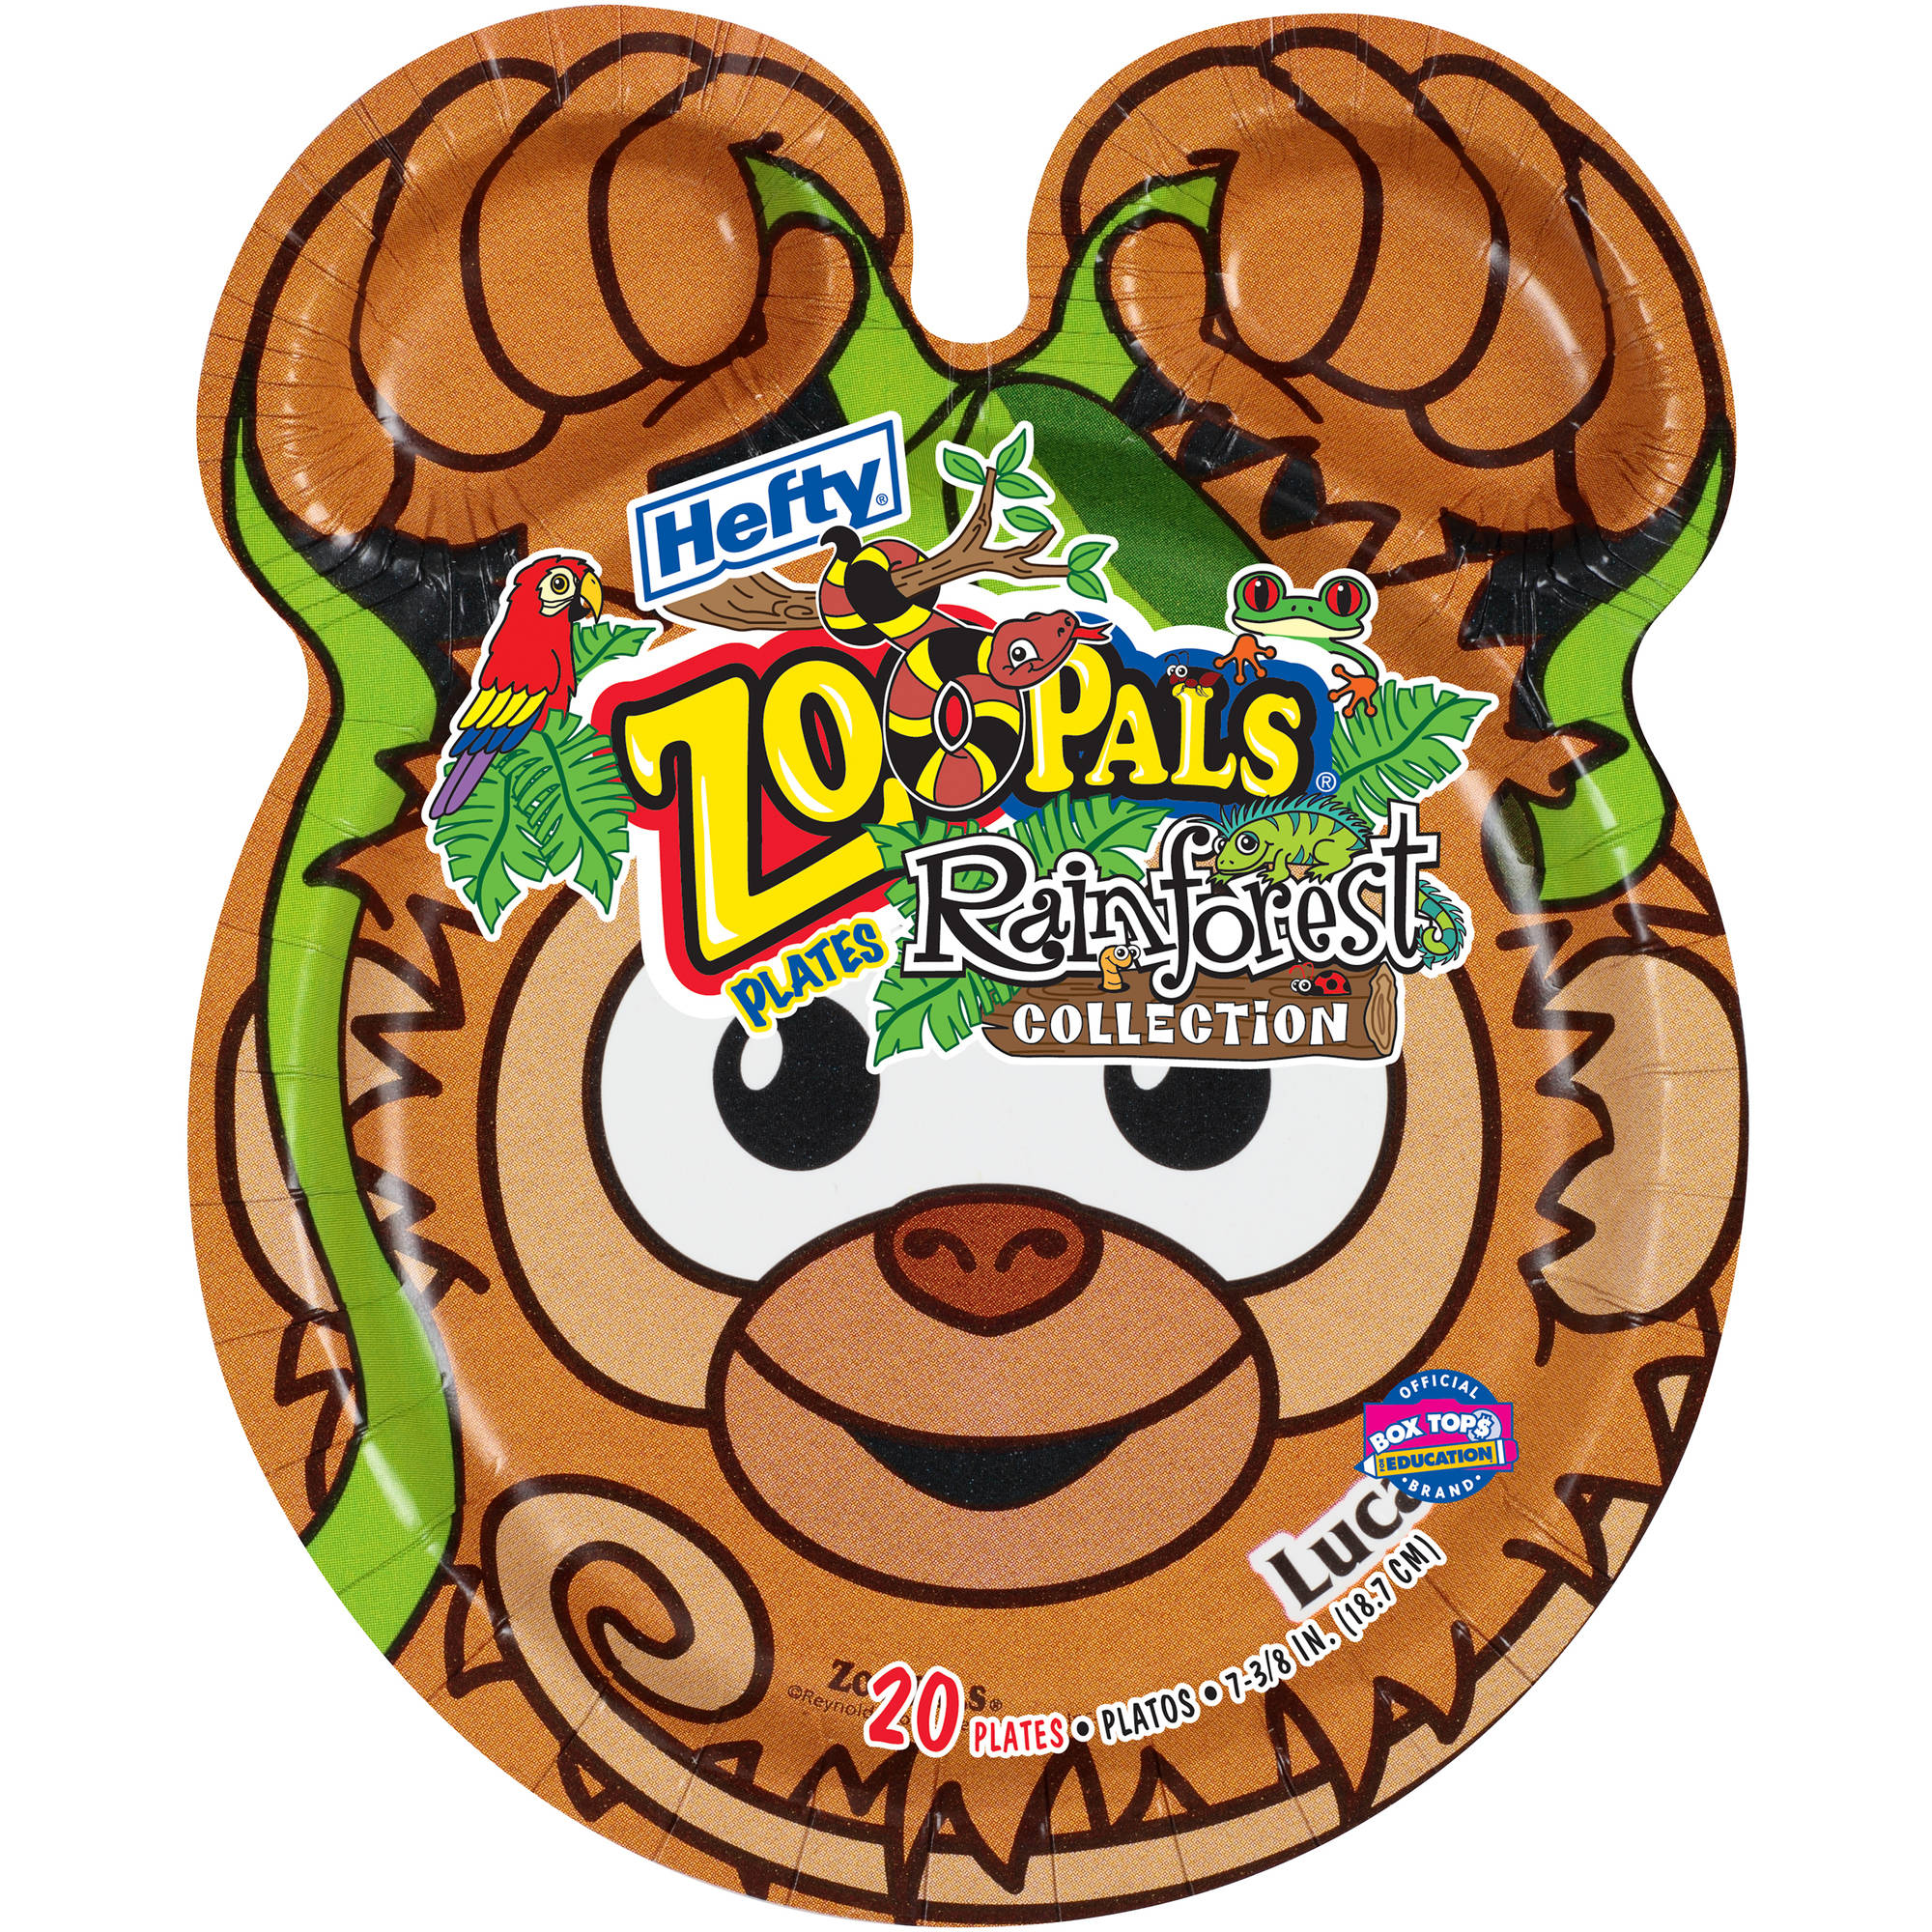 Hefty Zoo Pals Rainforest Collection Plates 20 count  sc 1 st  Walmart.com & Hefty Zoo Pals Rainforest Collection Plates 20 count - Walmart.com